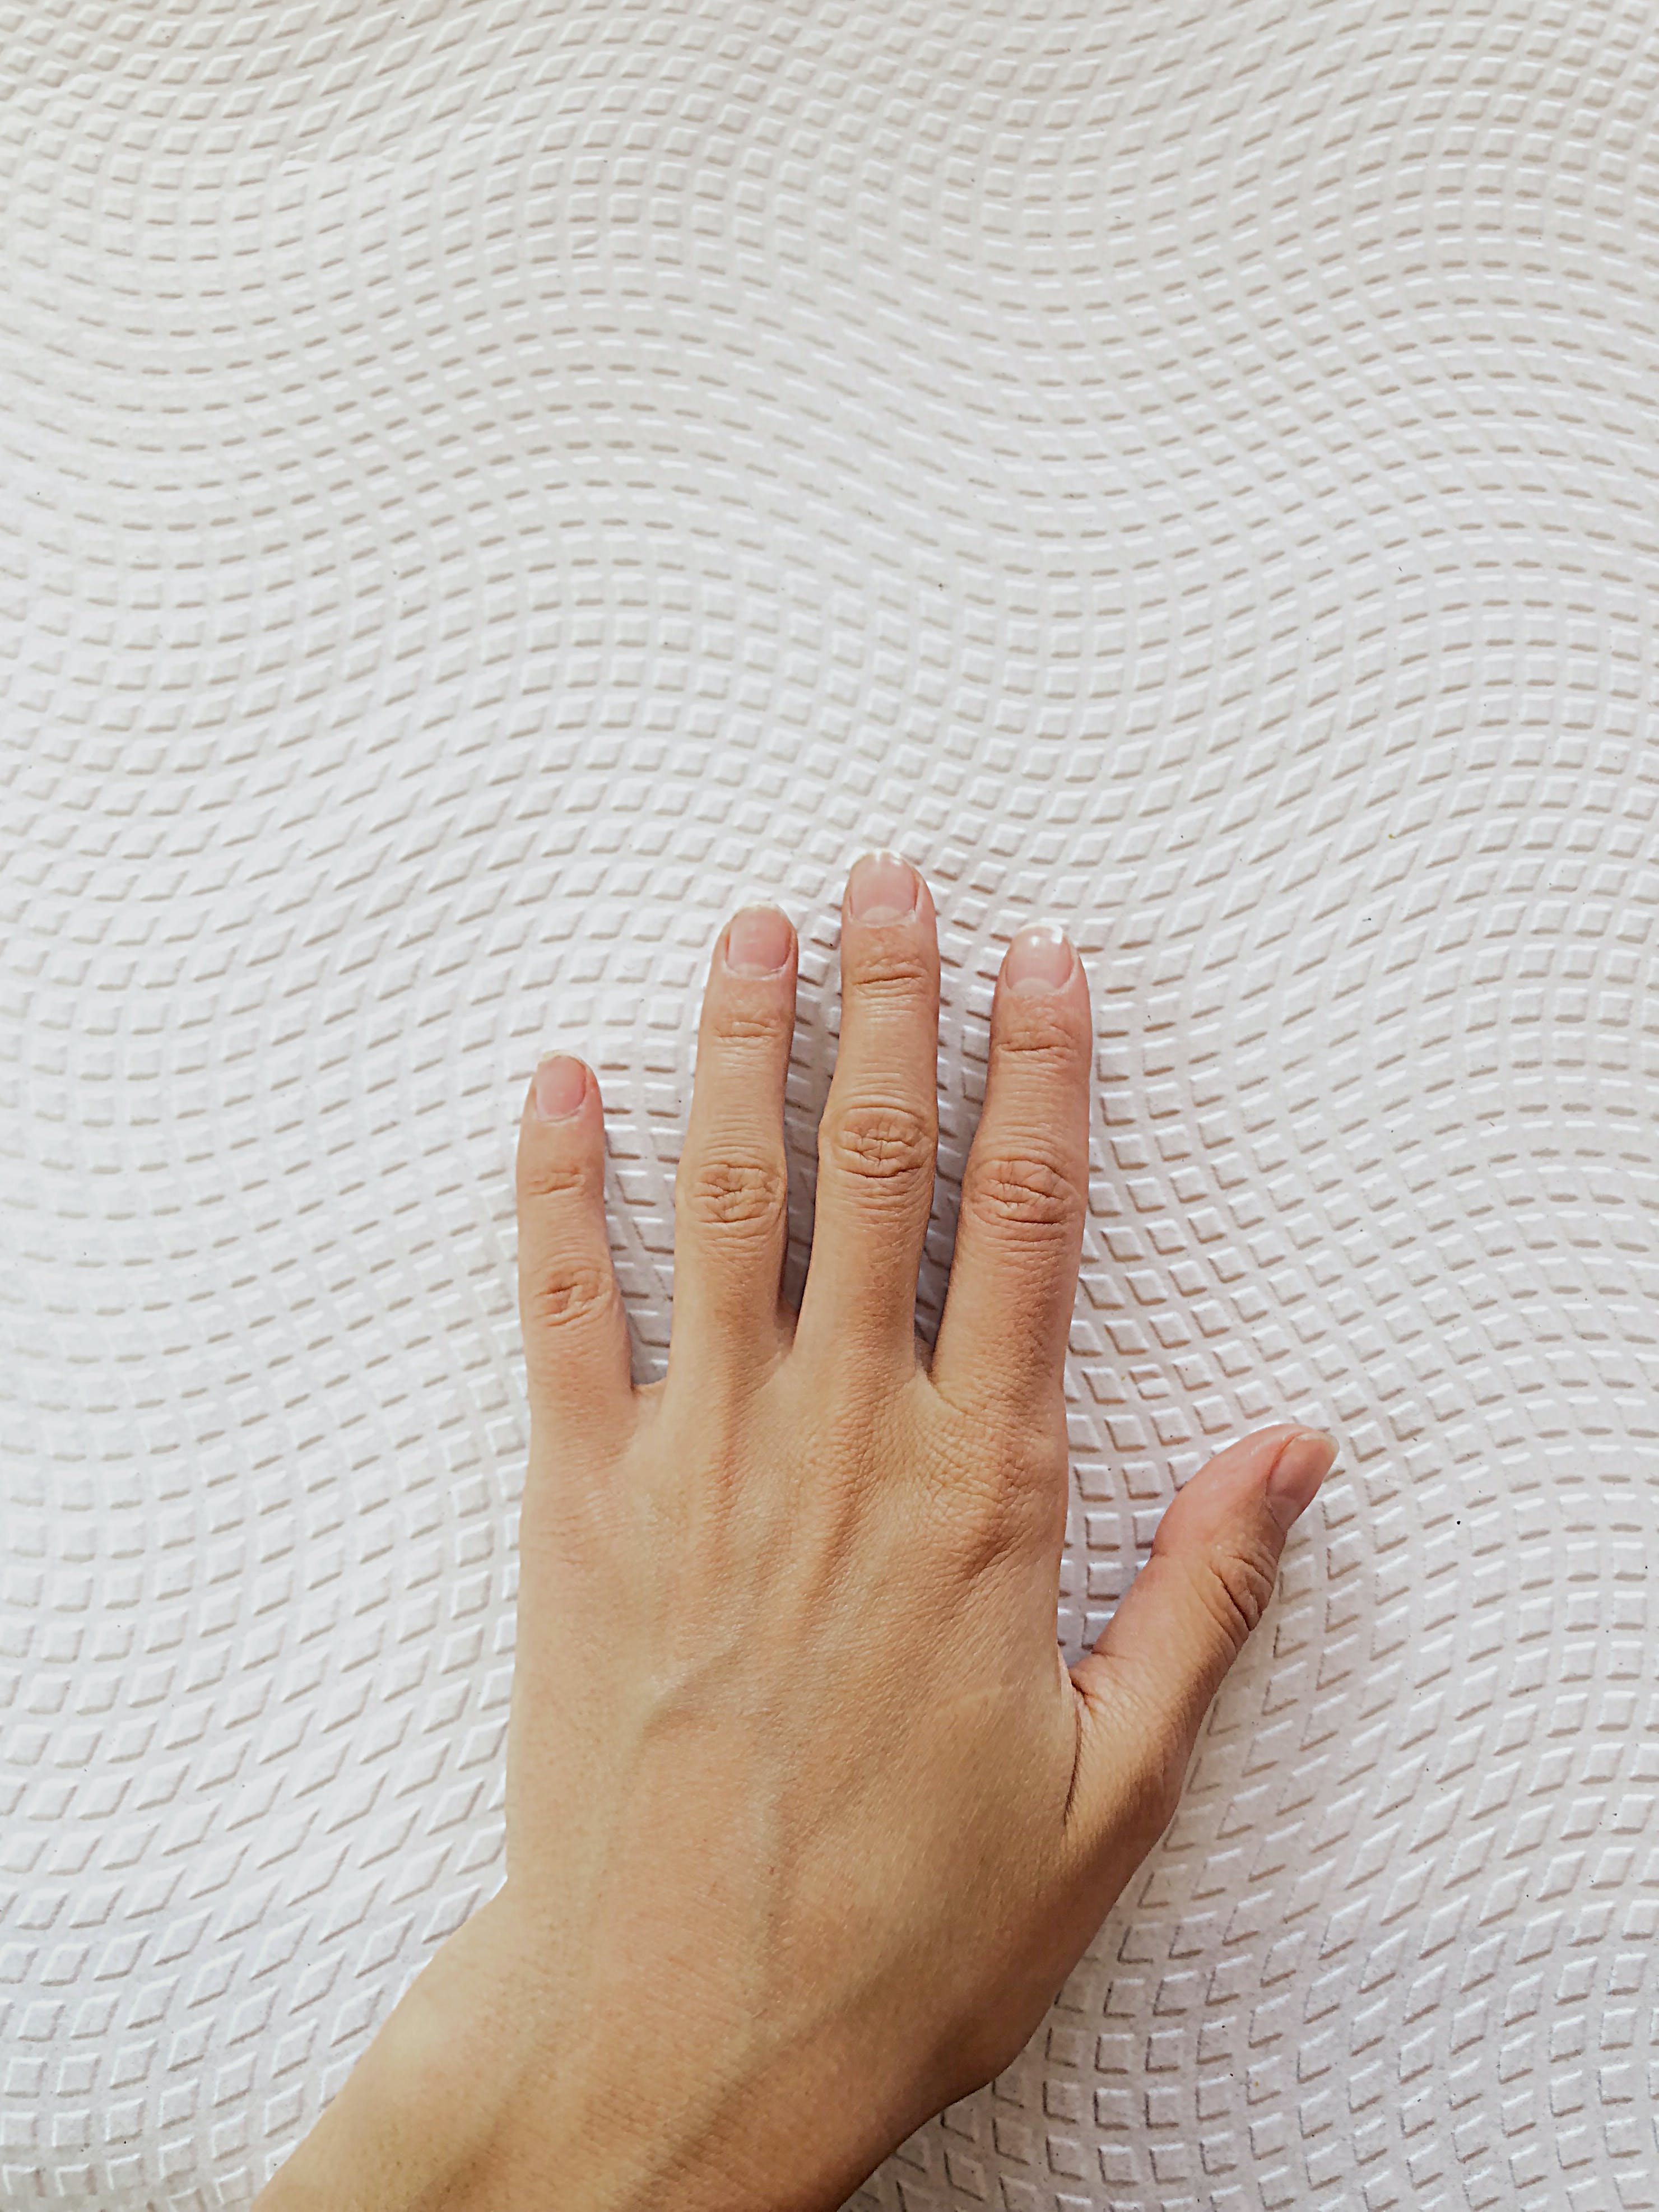 Left Human Hand on Quilted White Surface